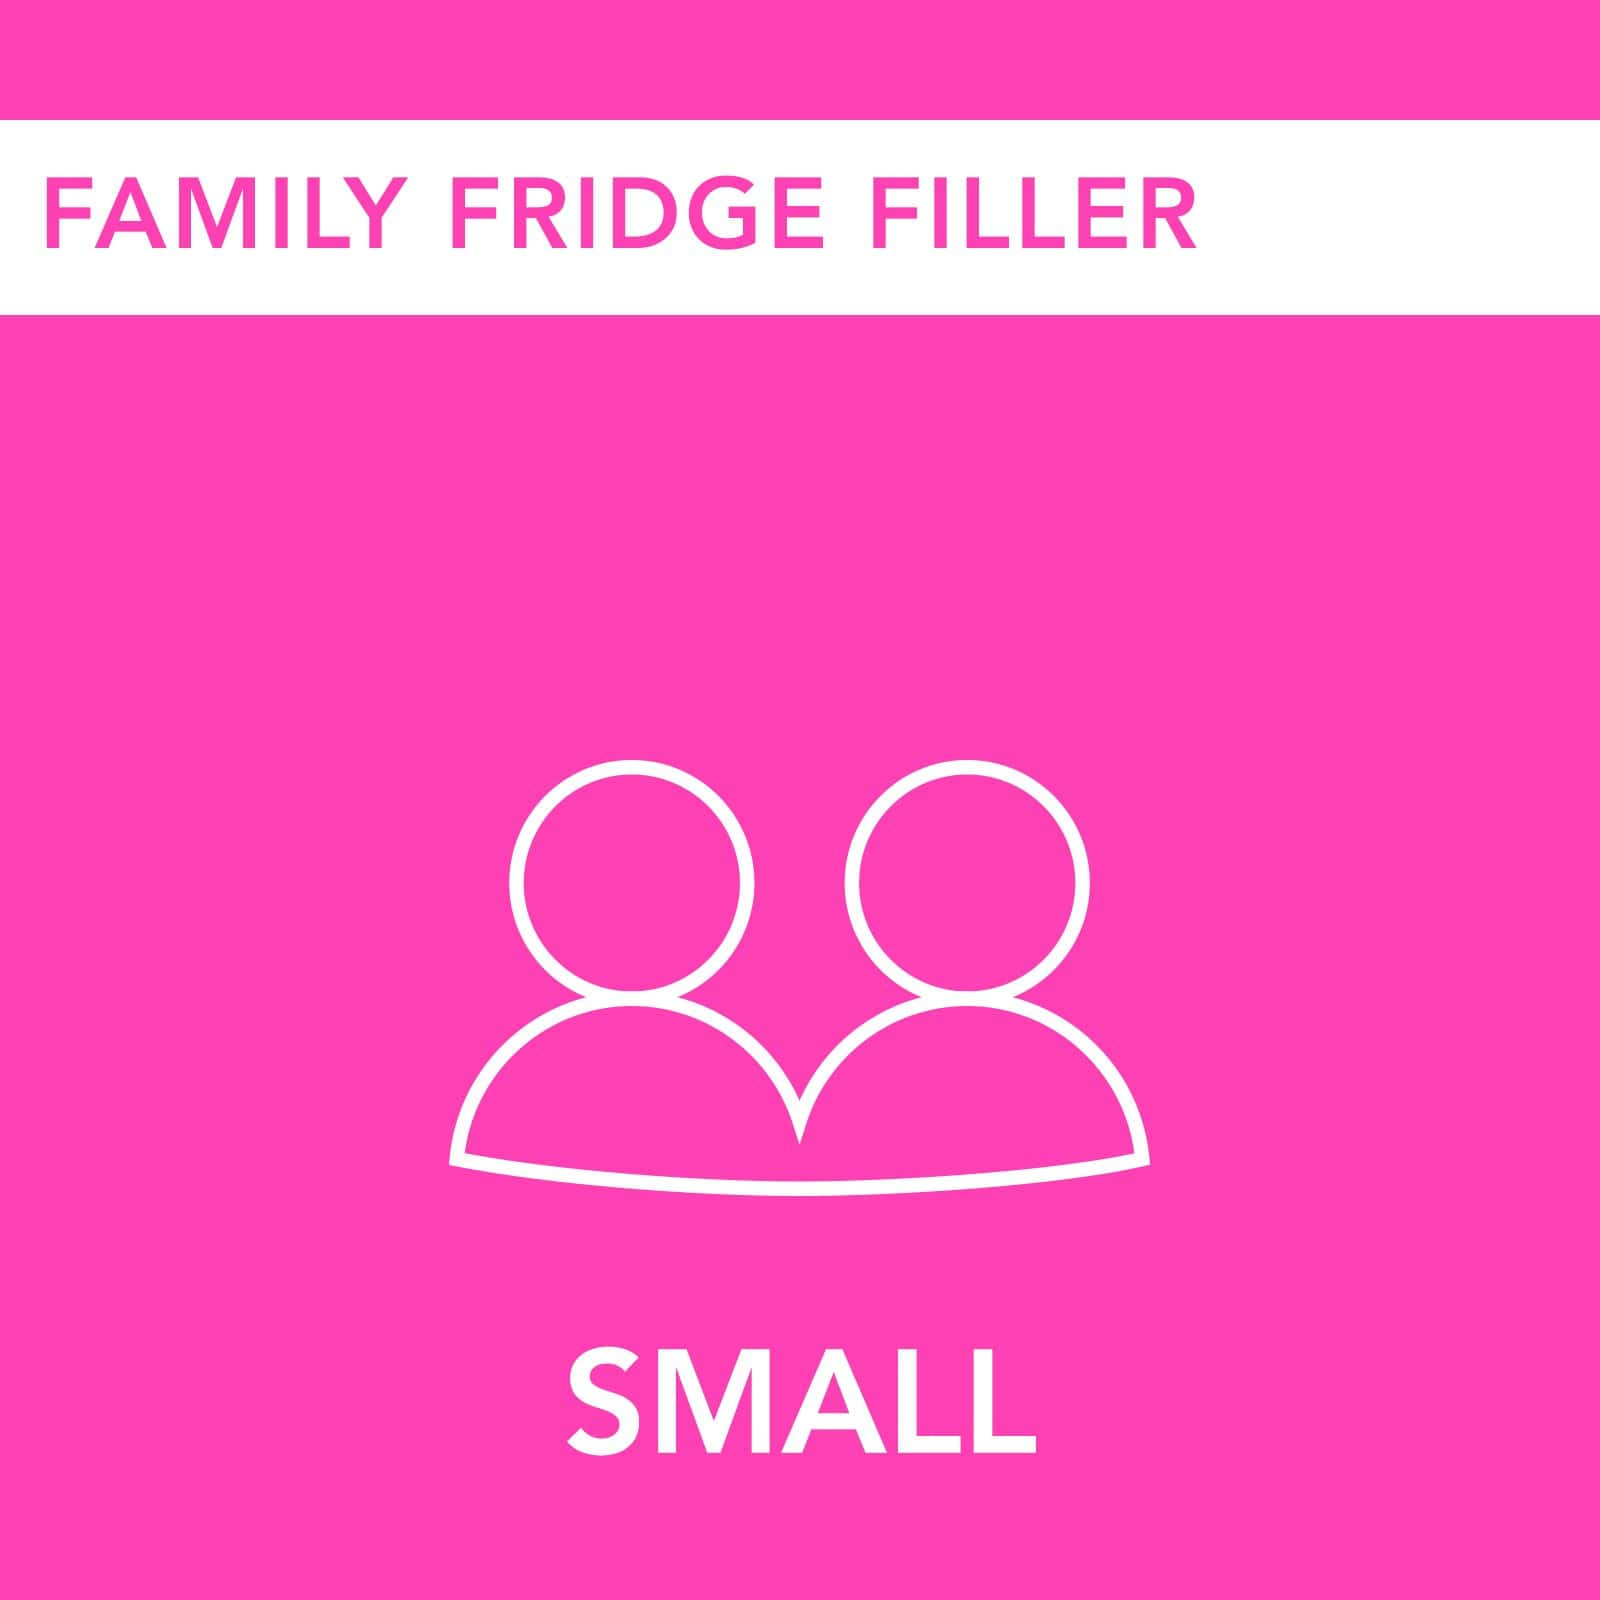 Small Family Fridge Filler - PRESS London